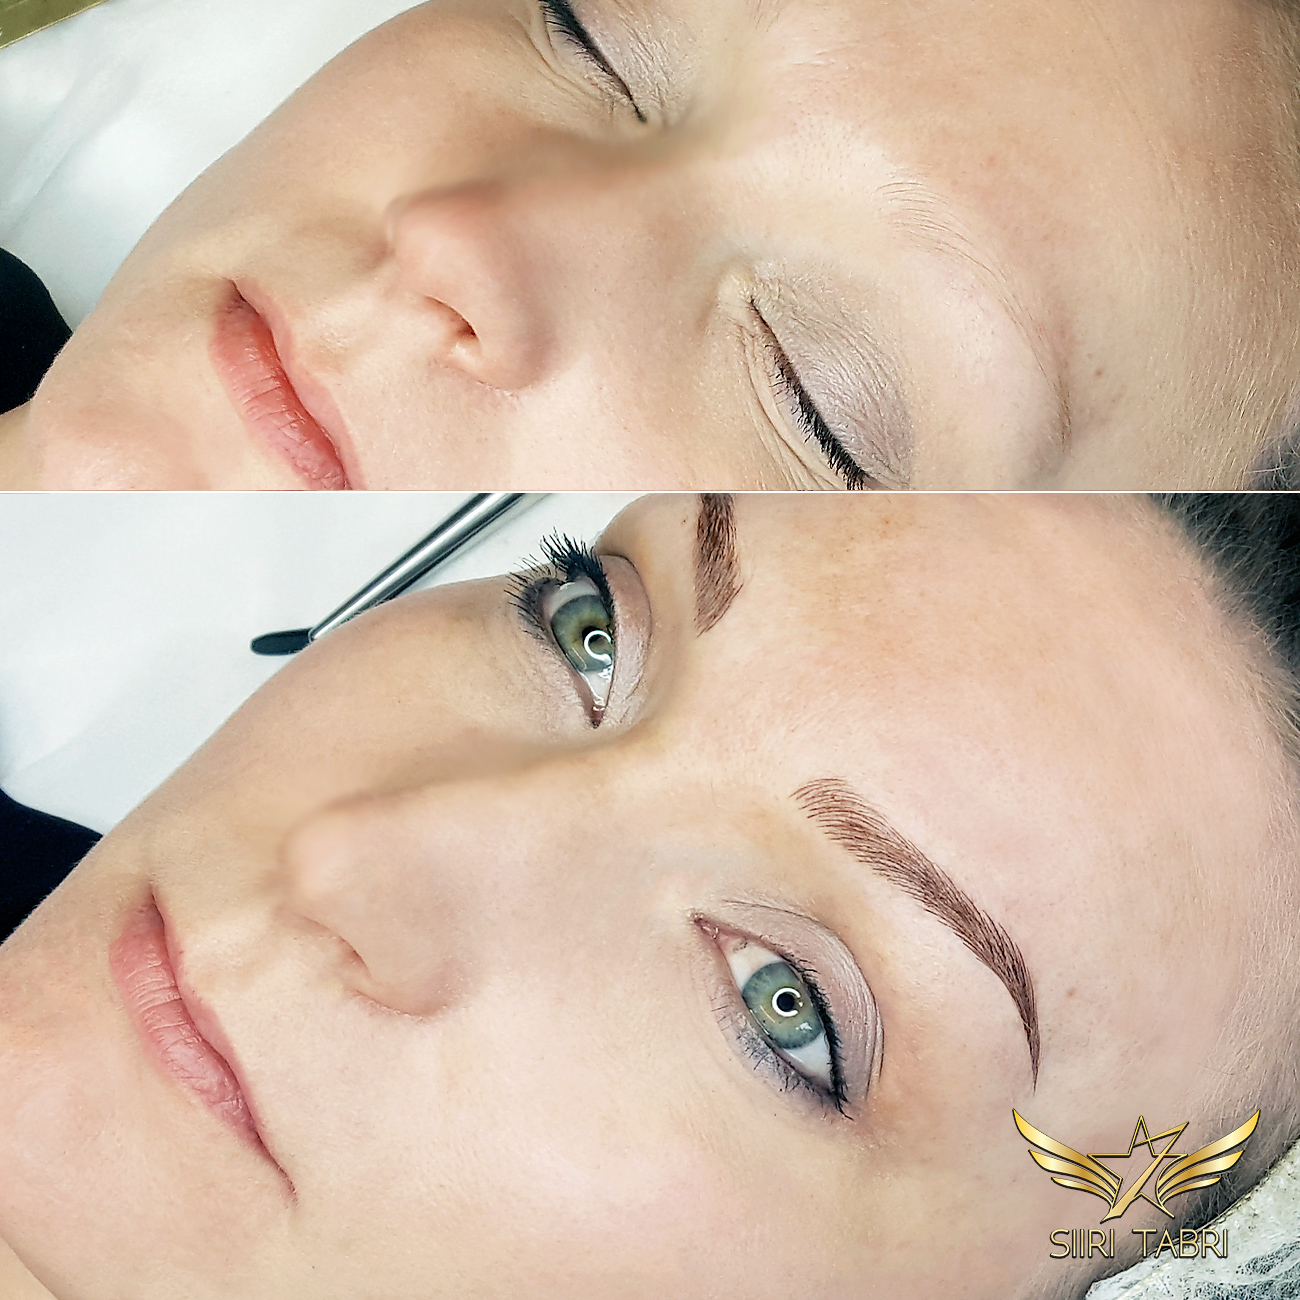 SharpBrows Light microblading - Total change in brows fast and easy with Light microblading.